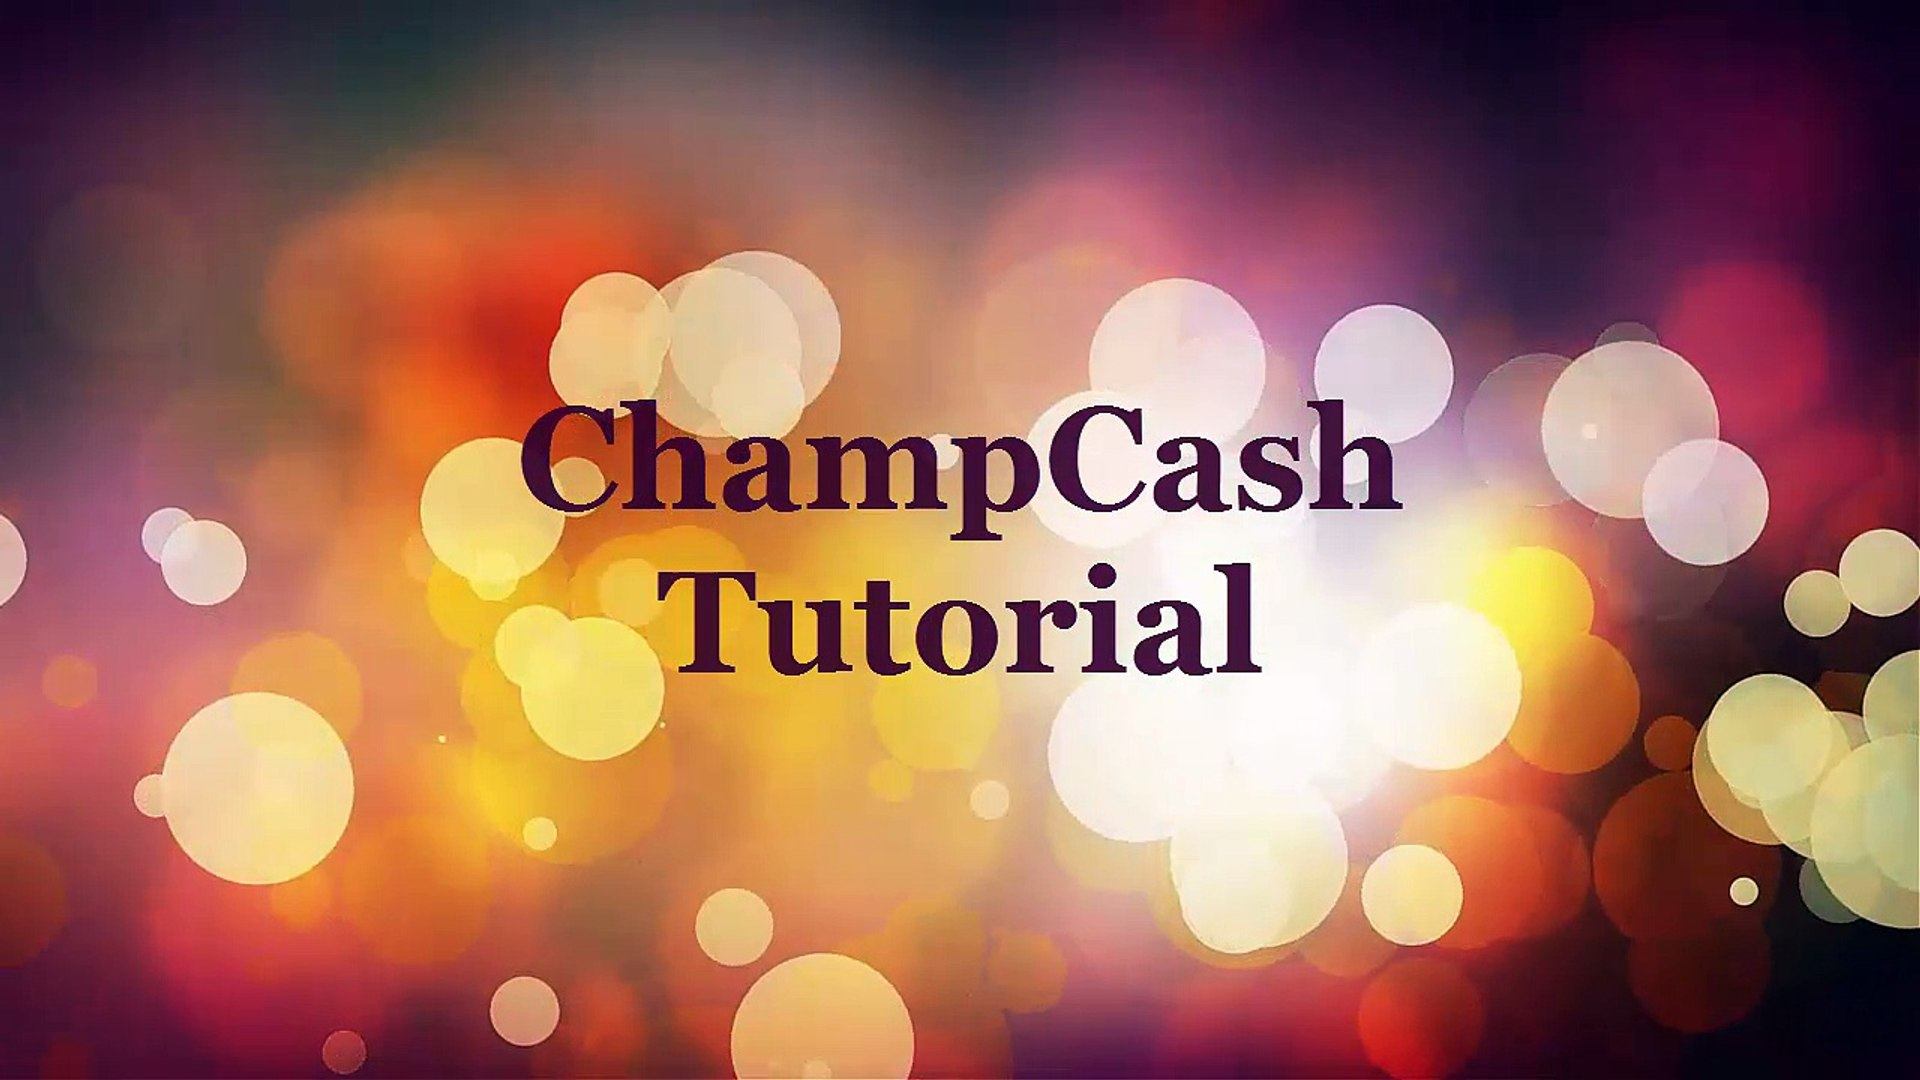 ChampCash News On DD News Channel